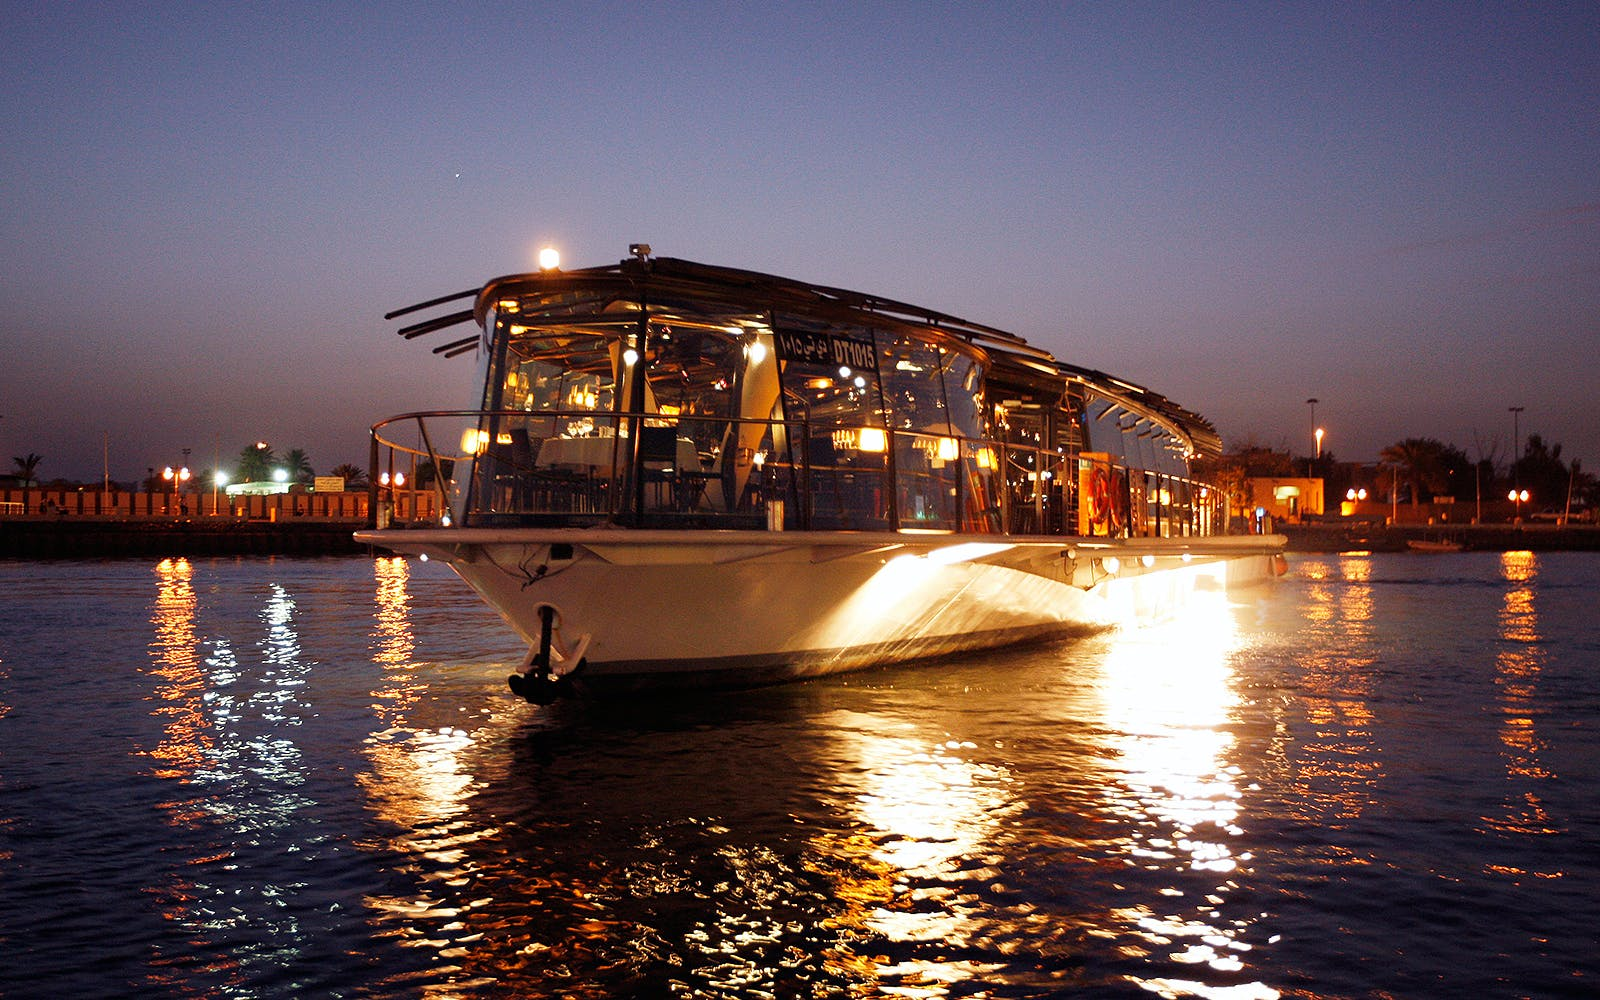 Bateaux Dinner Cruise with Complimentary Drink